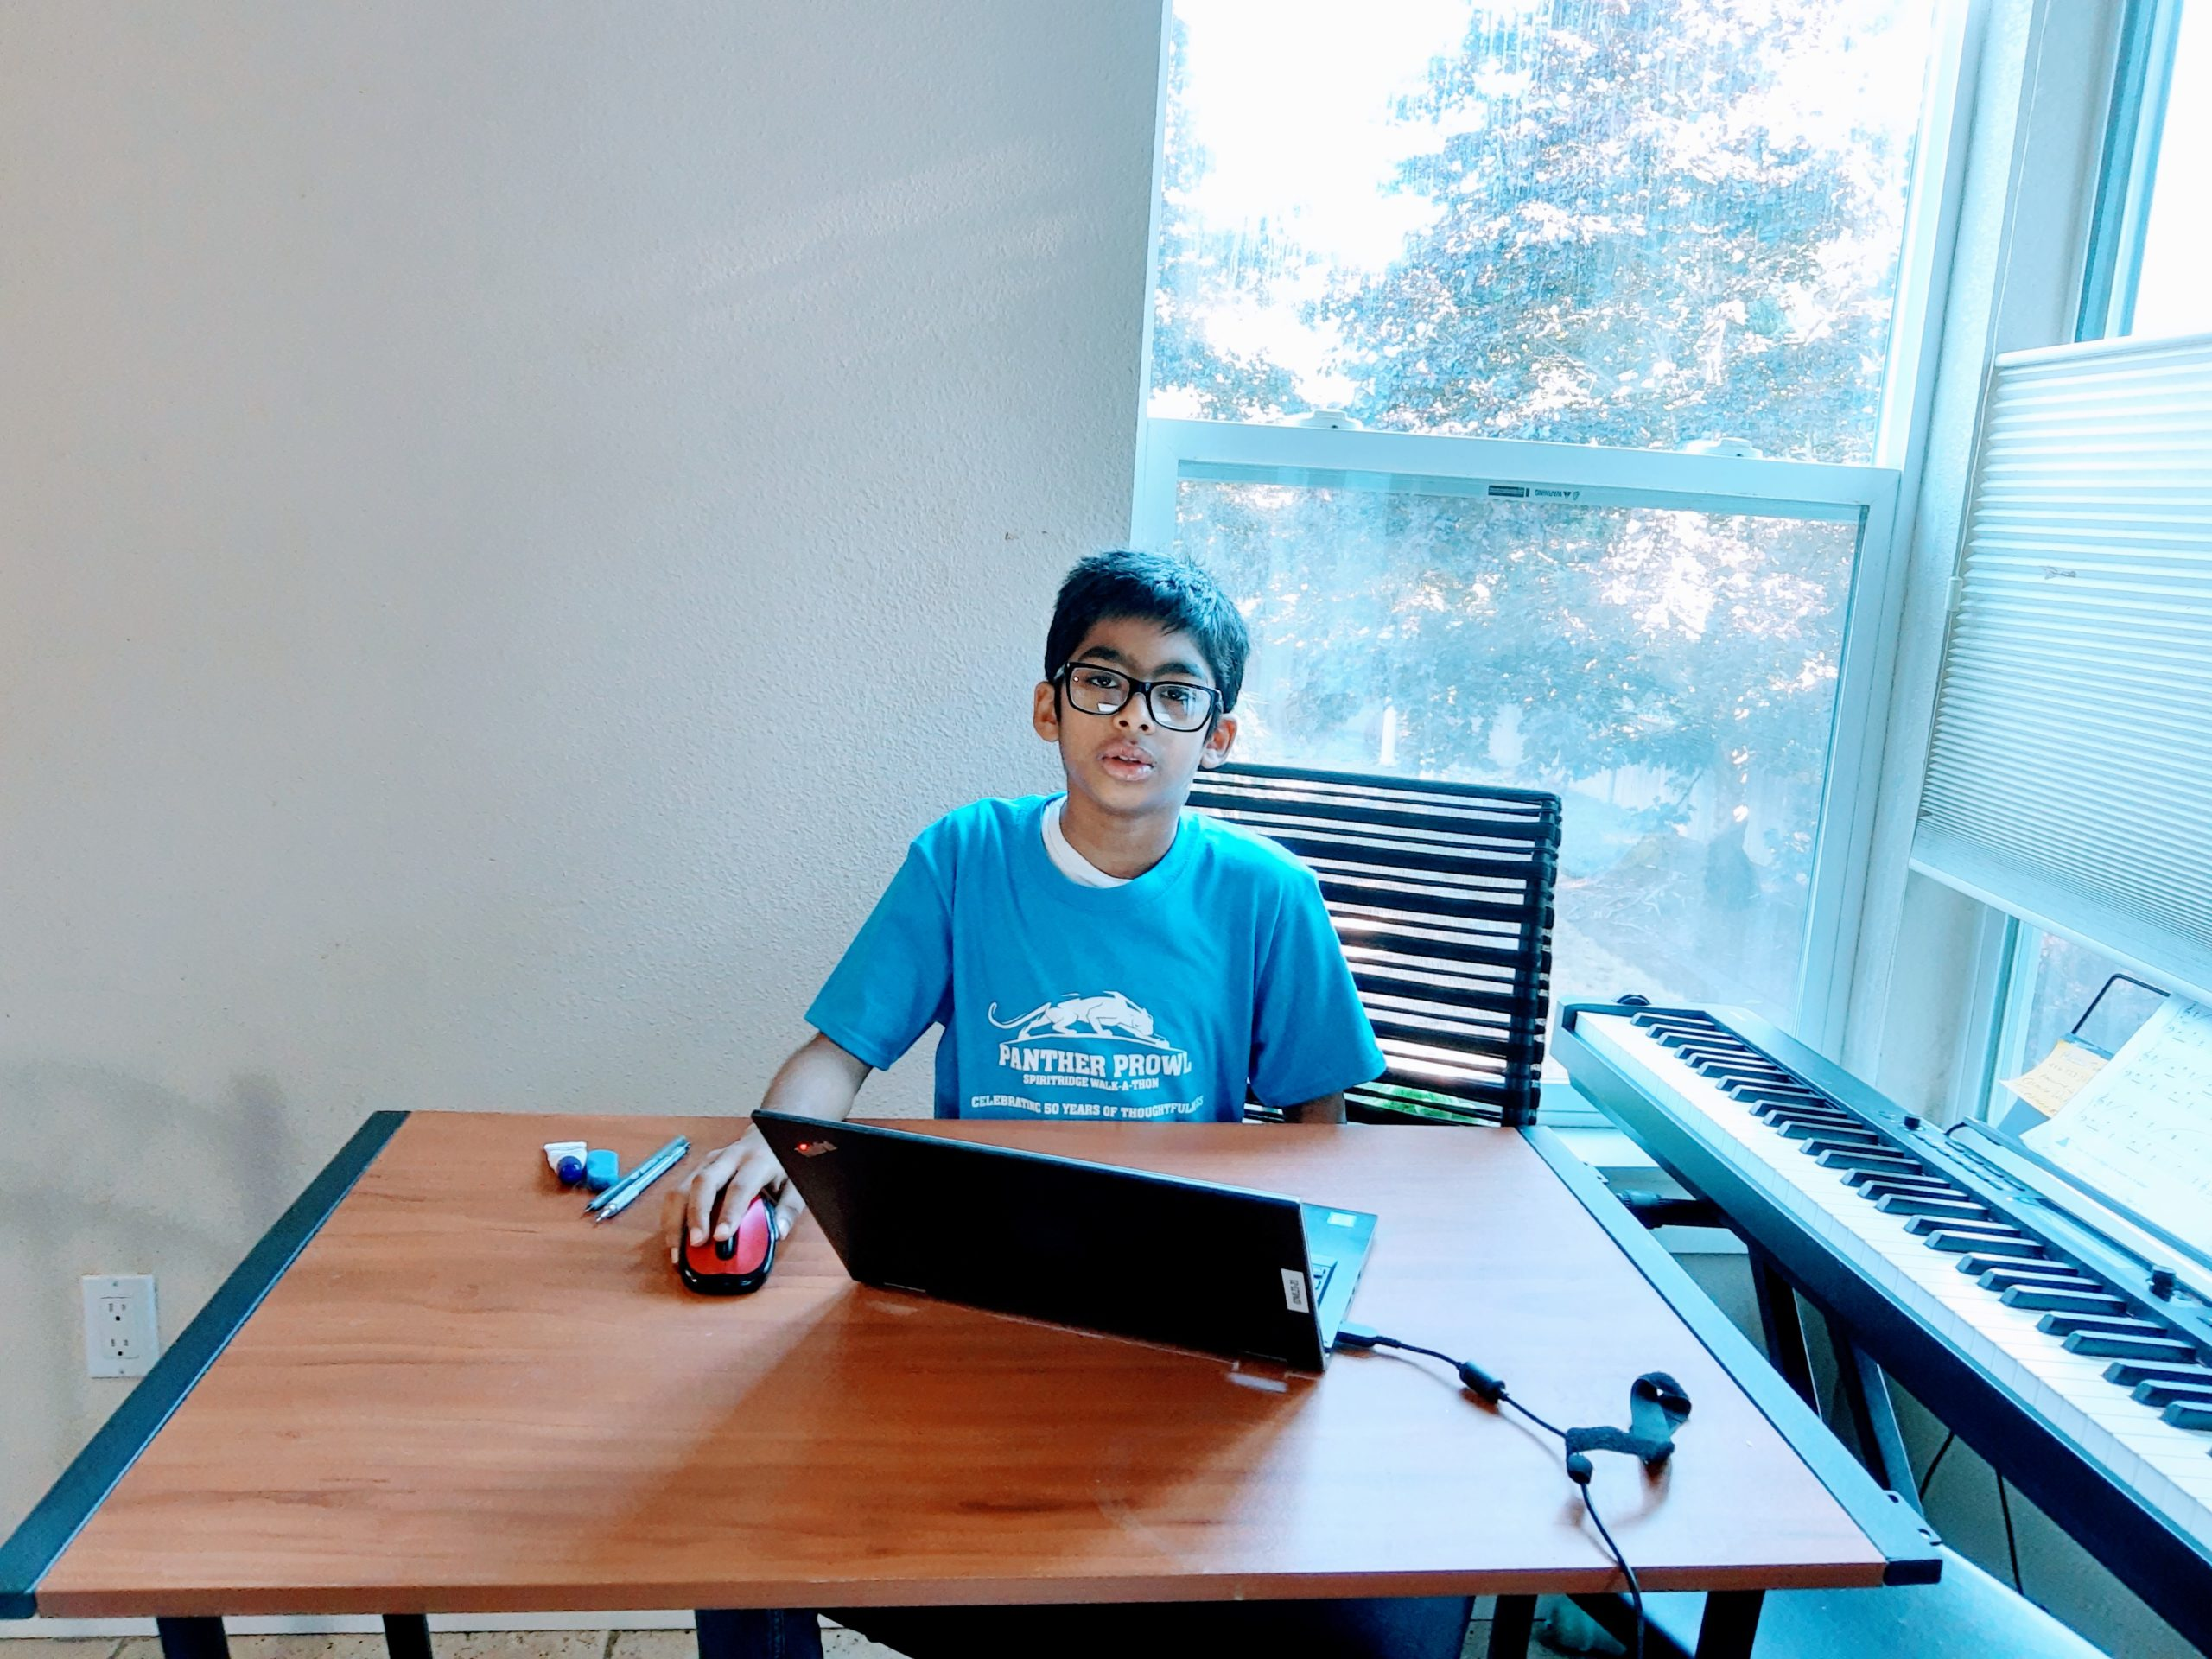 a student sitting at a desk using a laptop